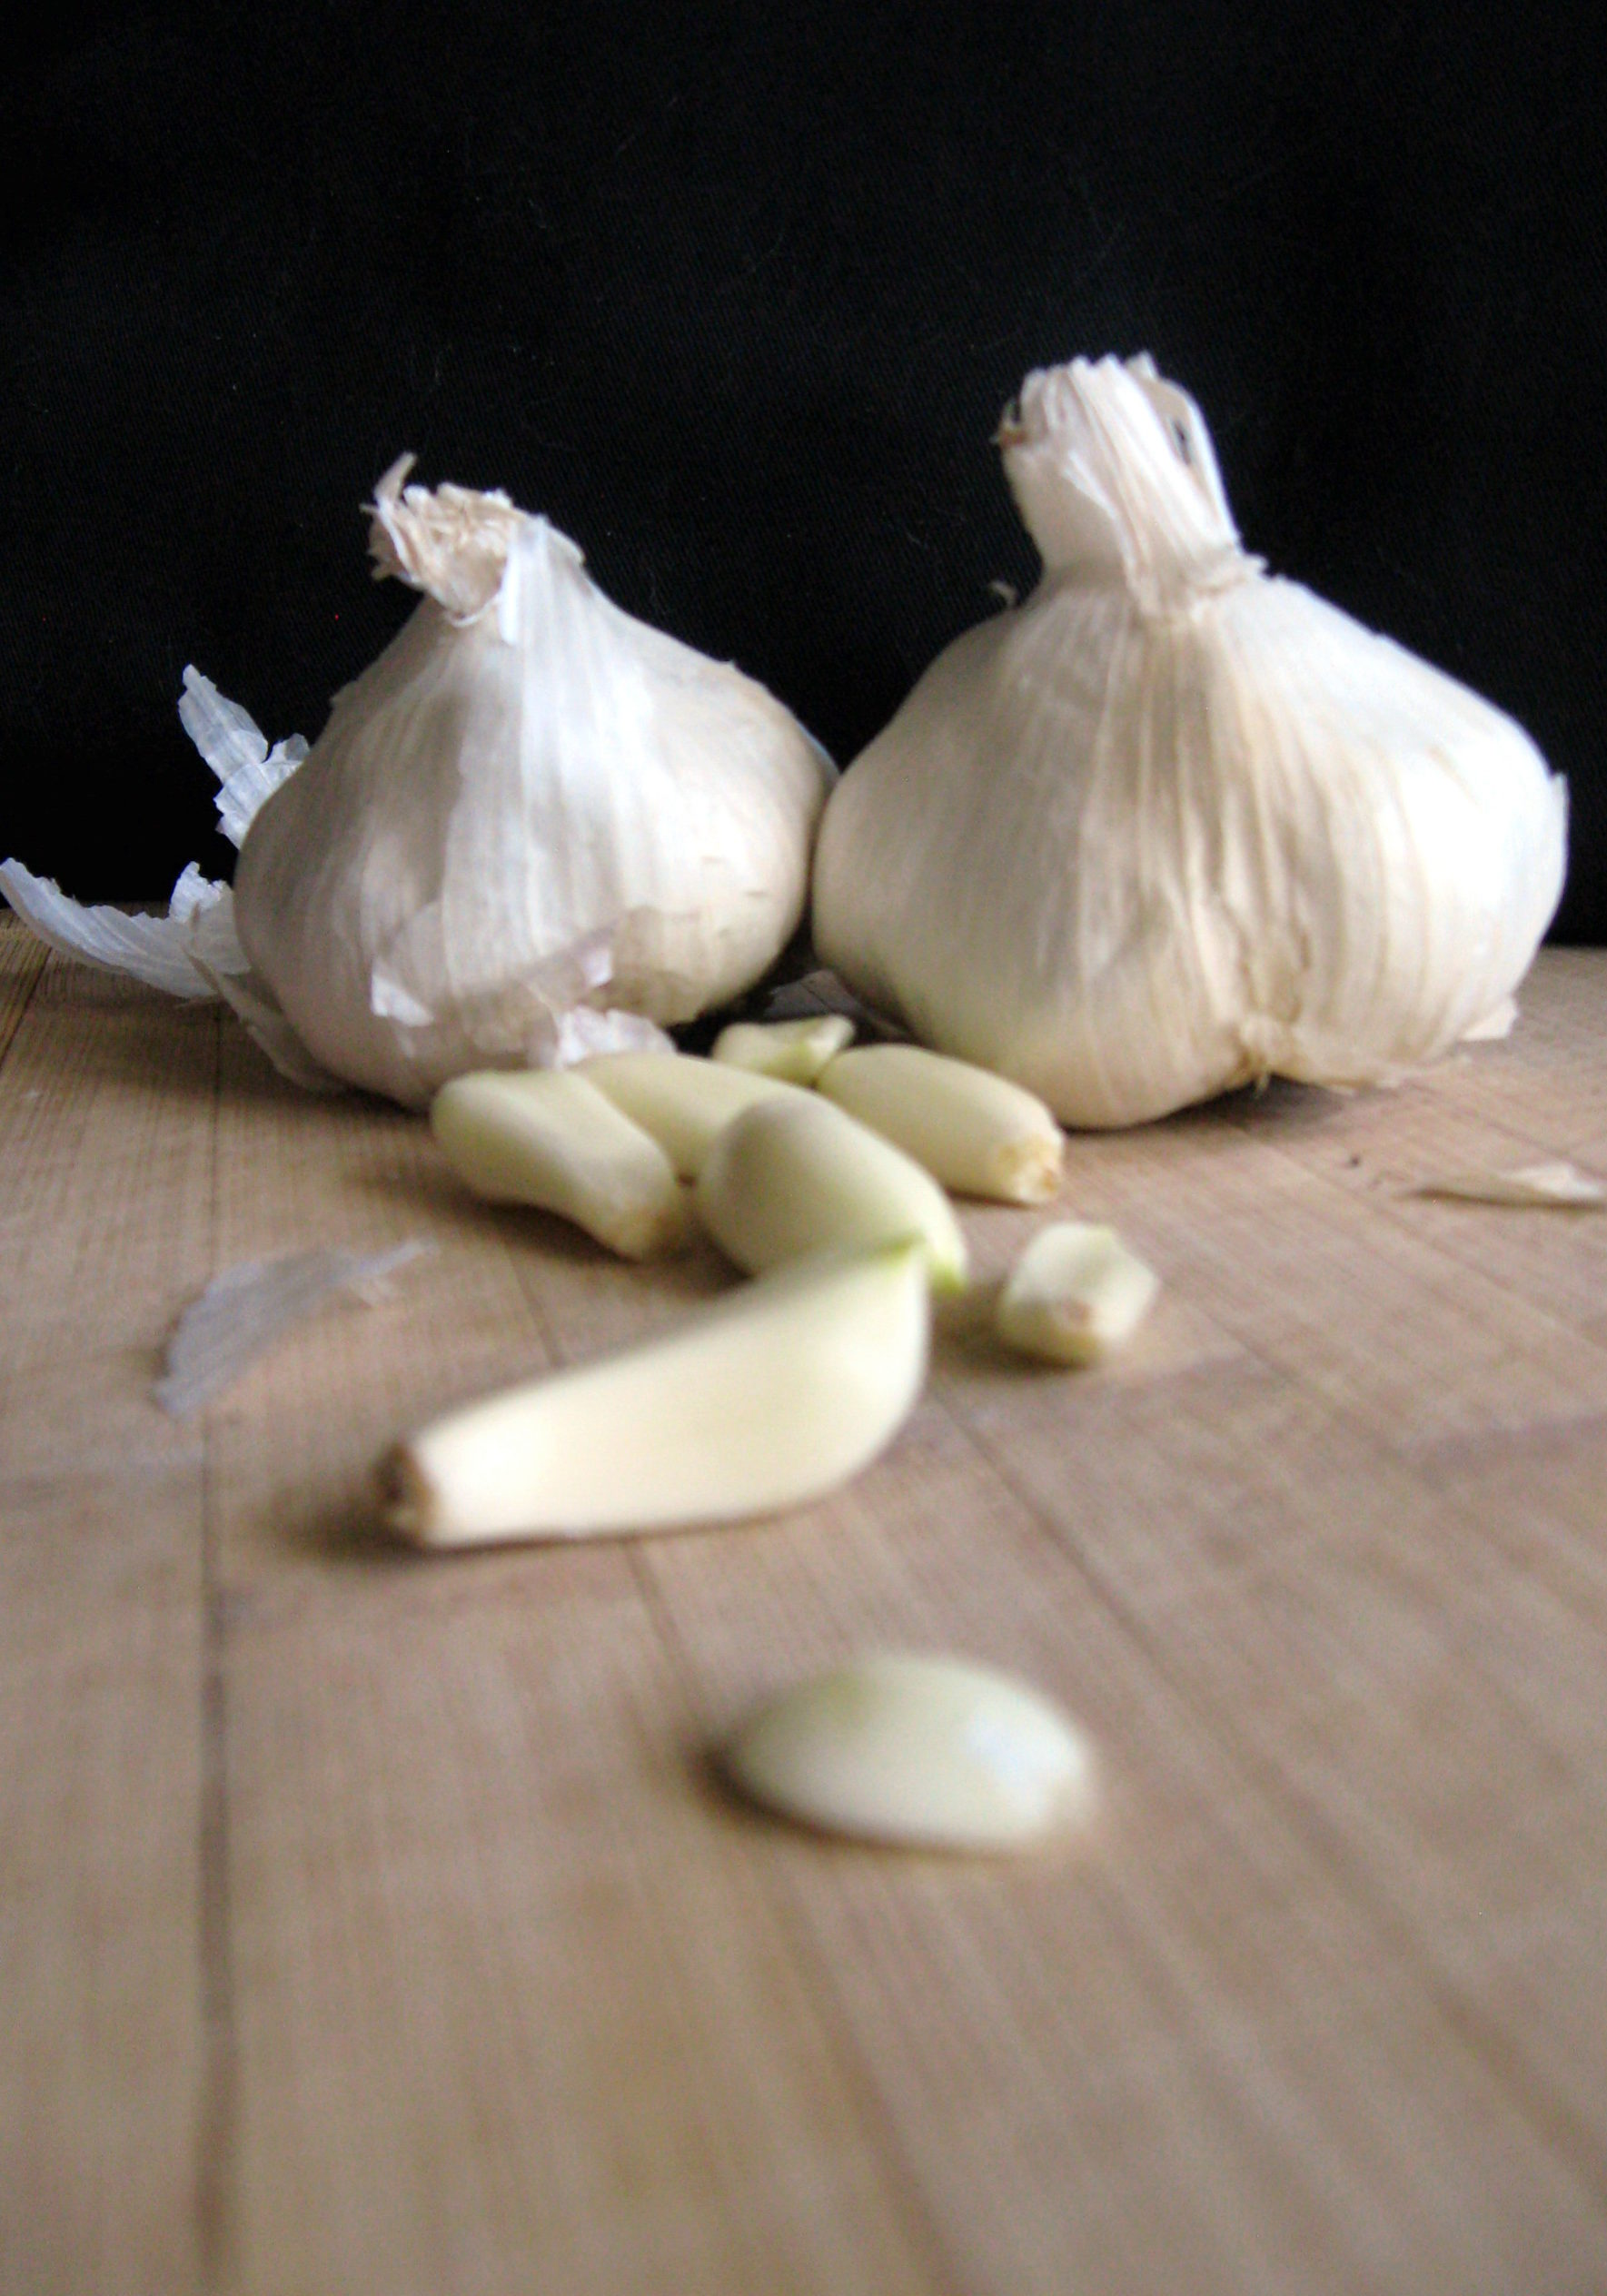 garlic-fullsize